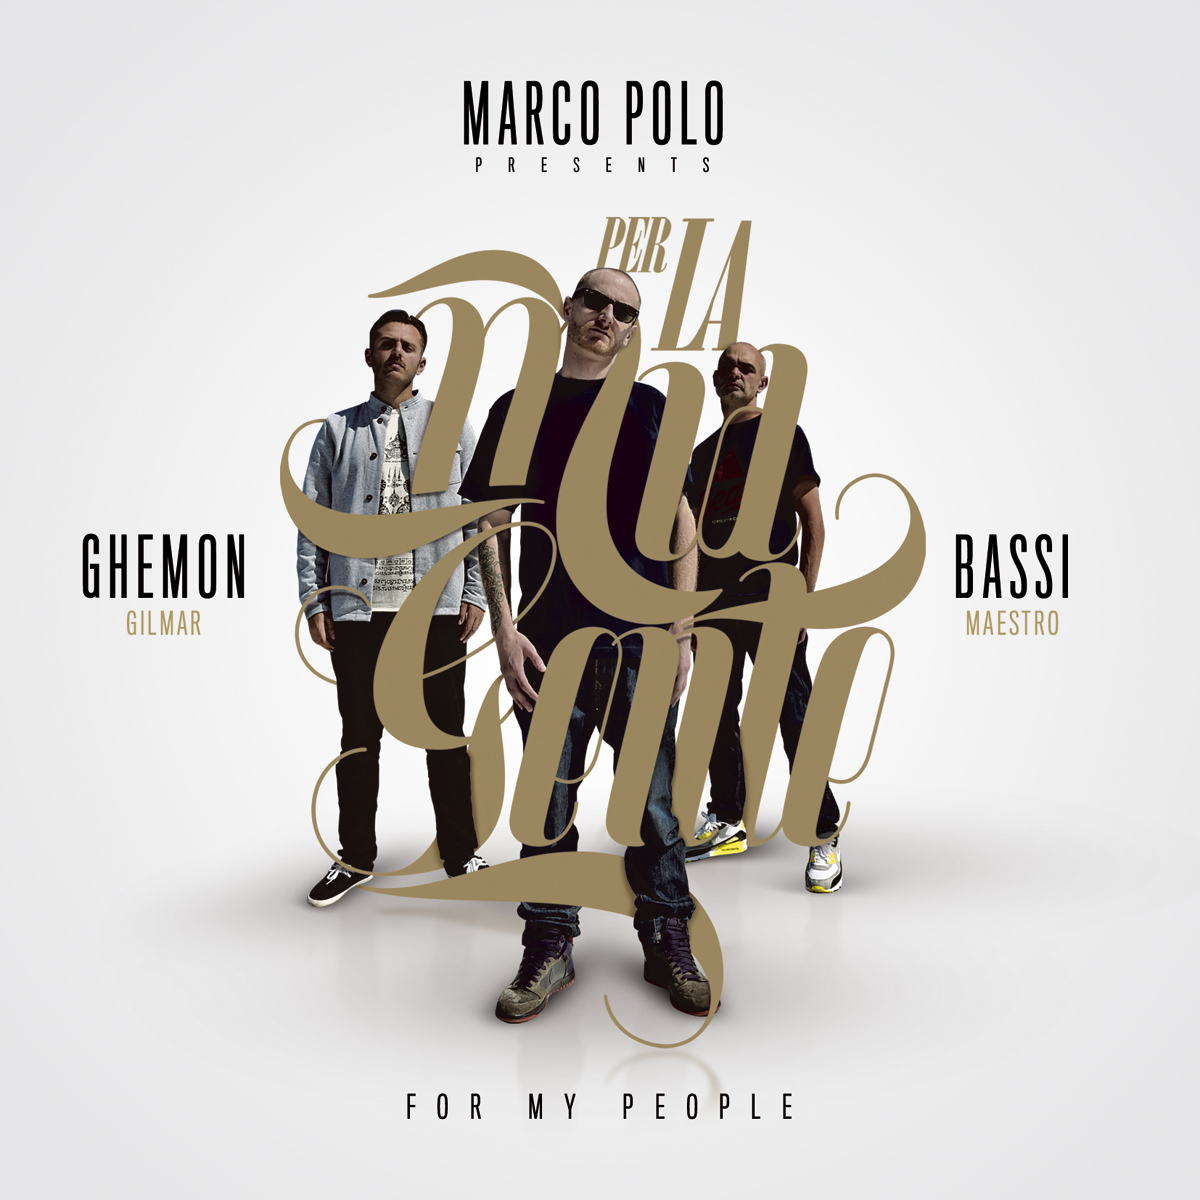 Marco Polo presents Bassi maestro and Ghemon Gilmar - Per la mia gente (For my people)